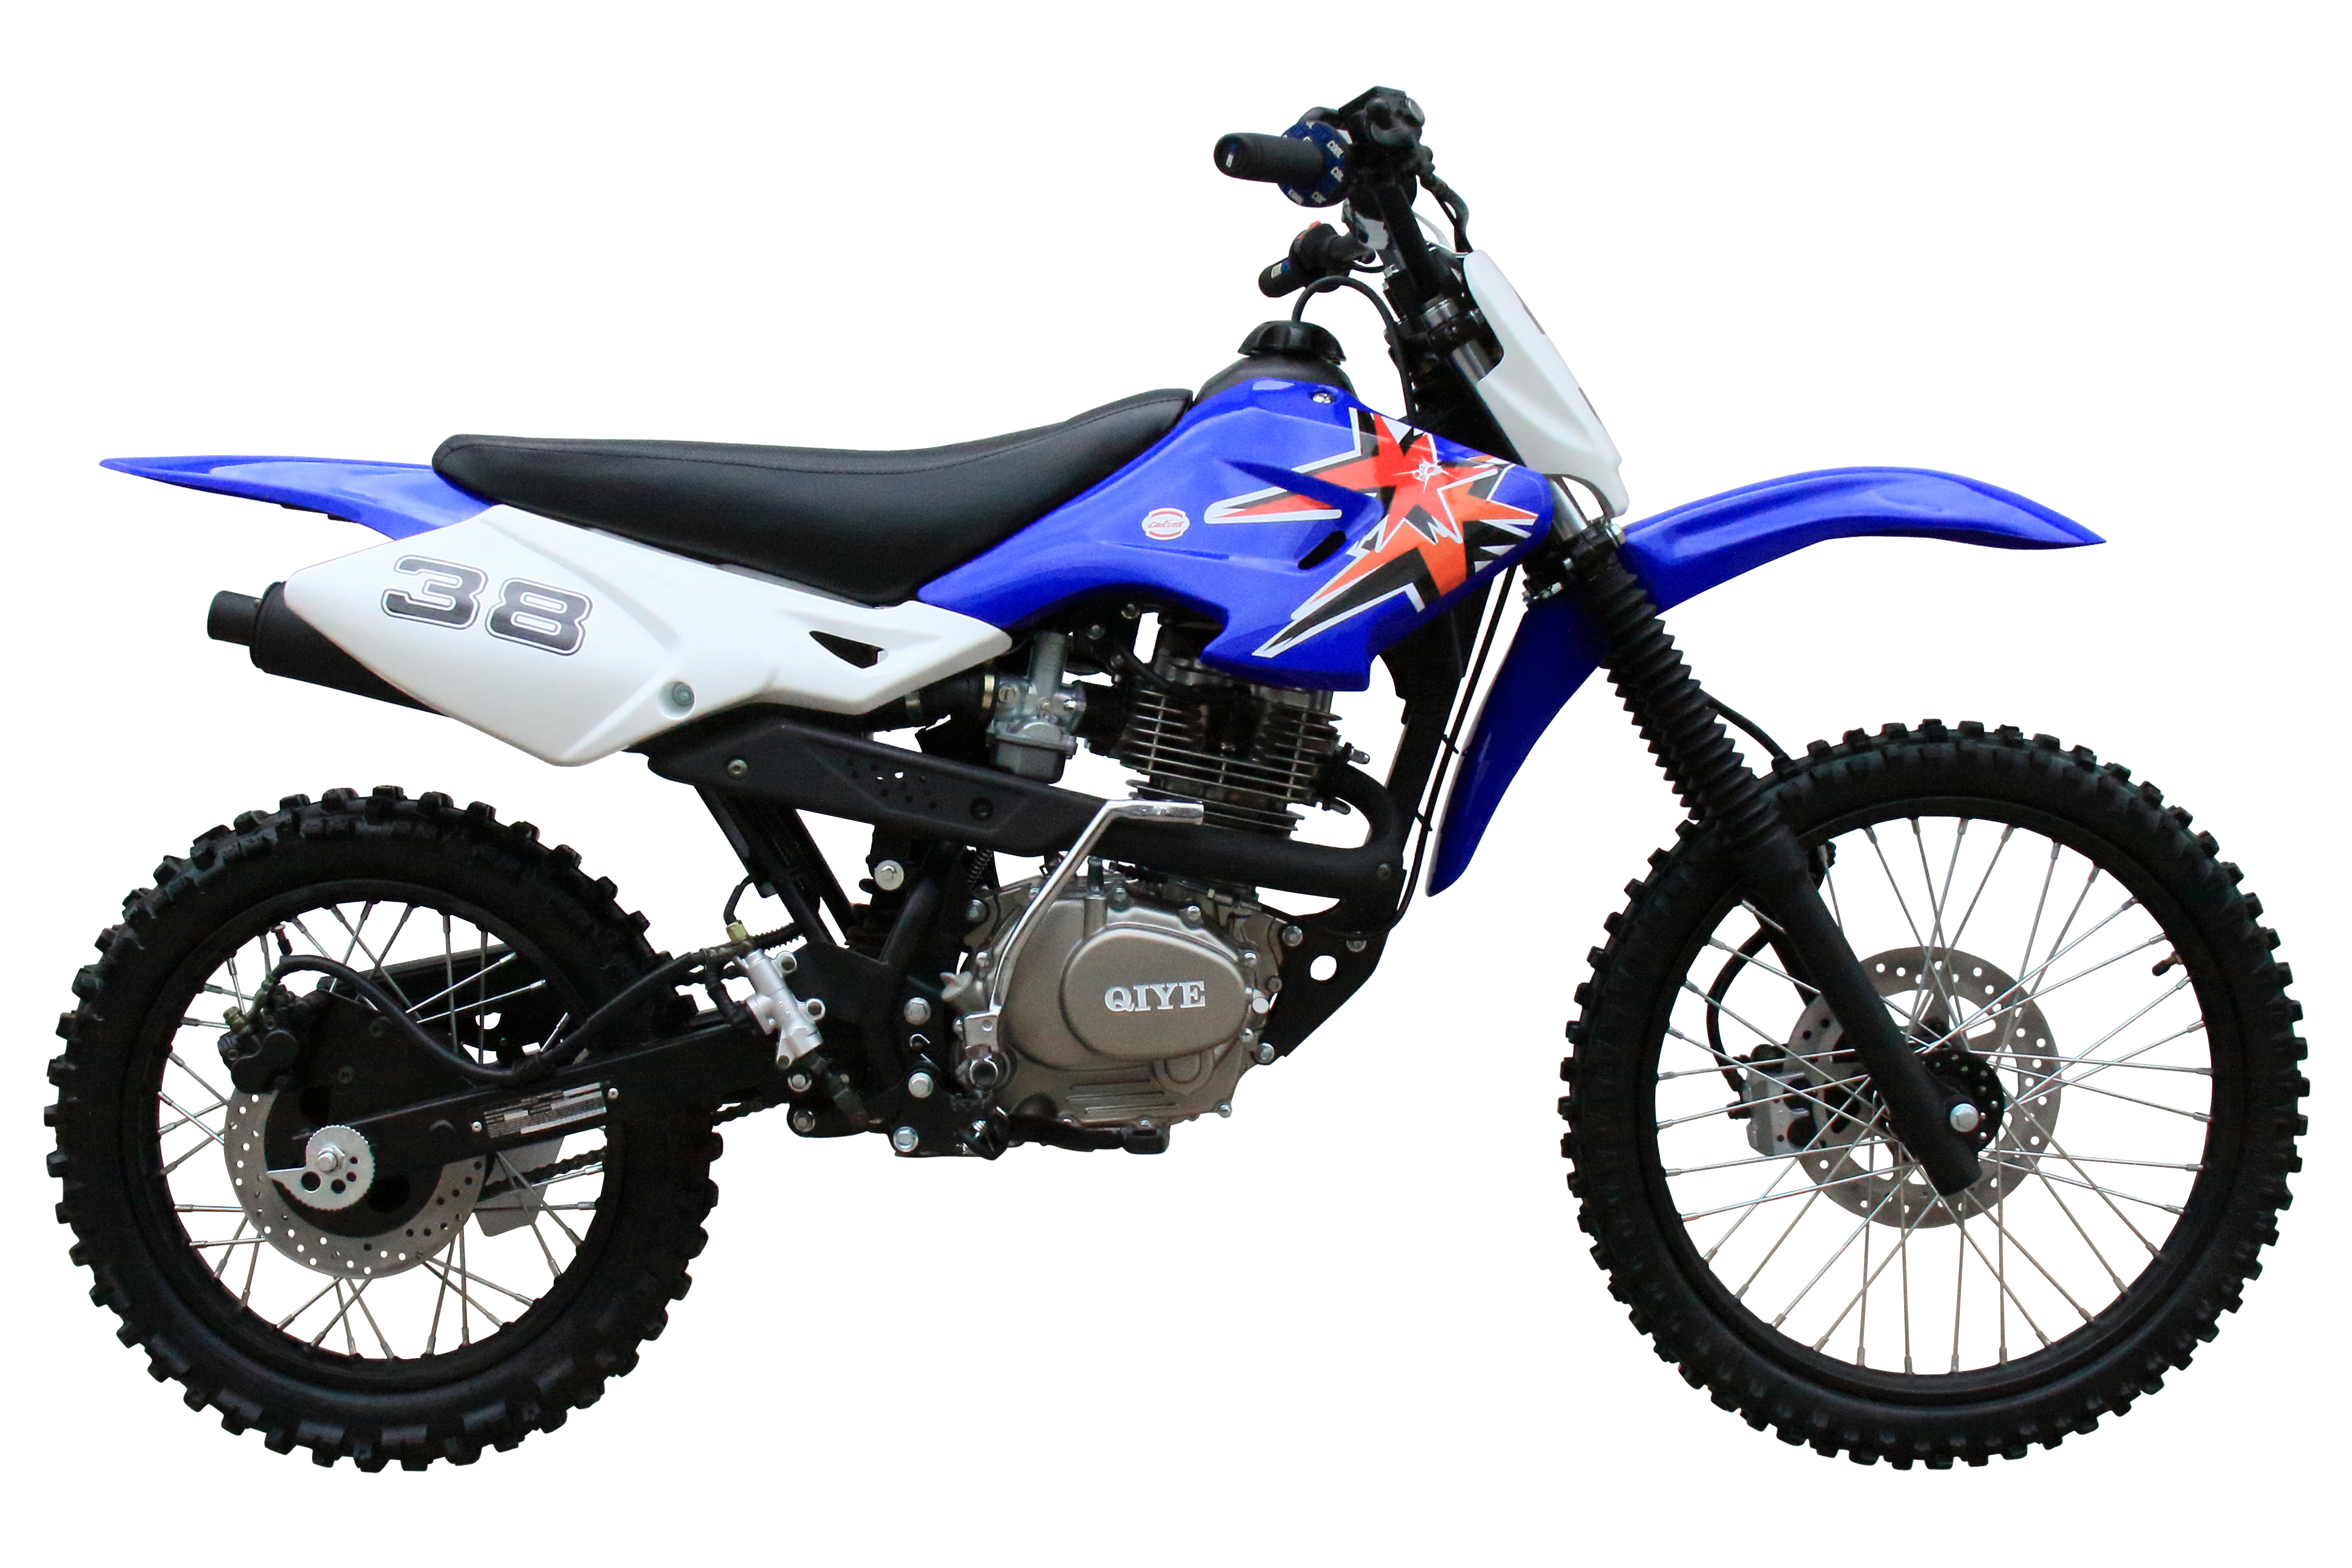 Coolster QG-216 200cc Dirt Bike Parts